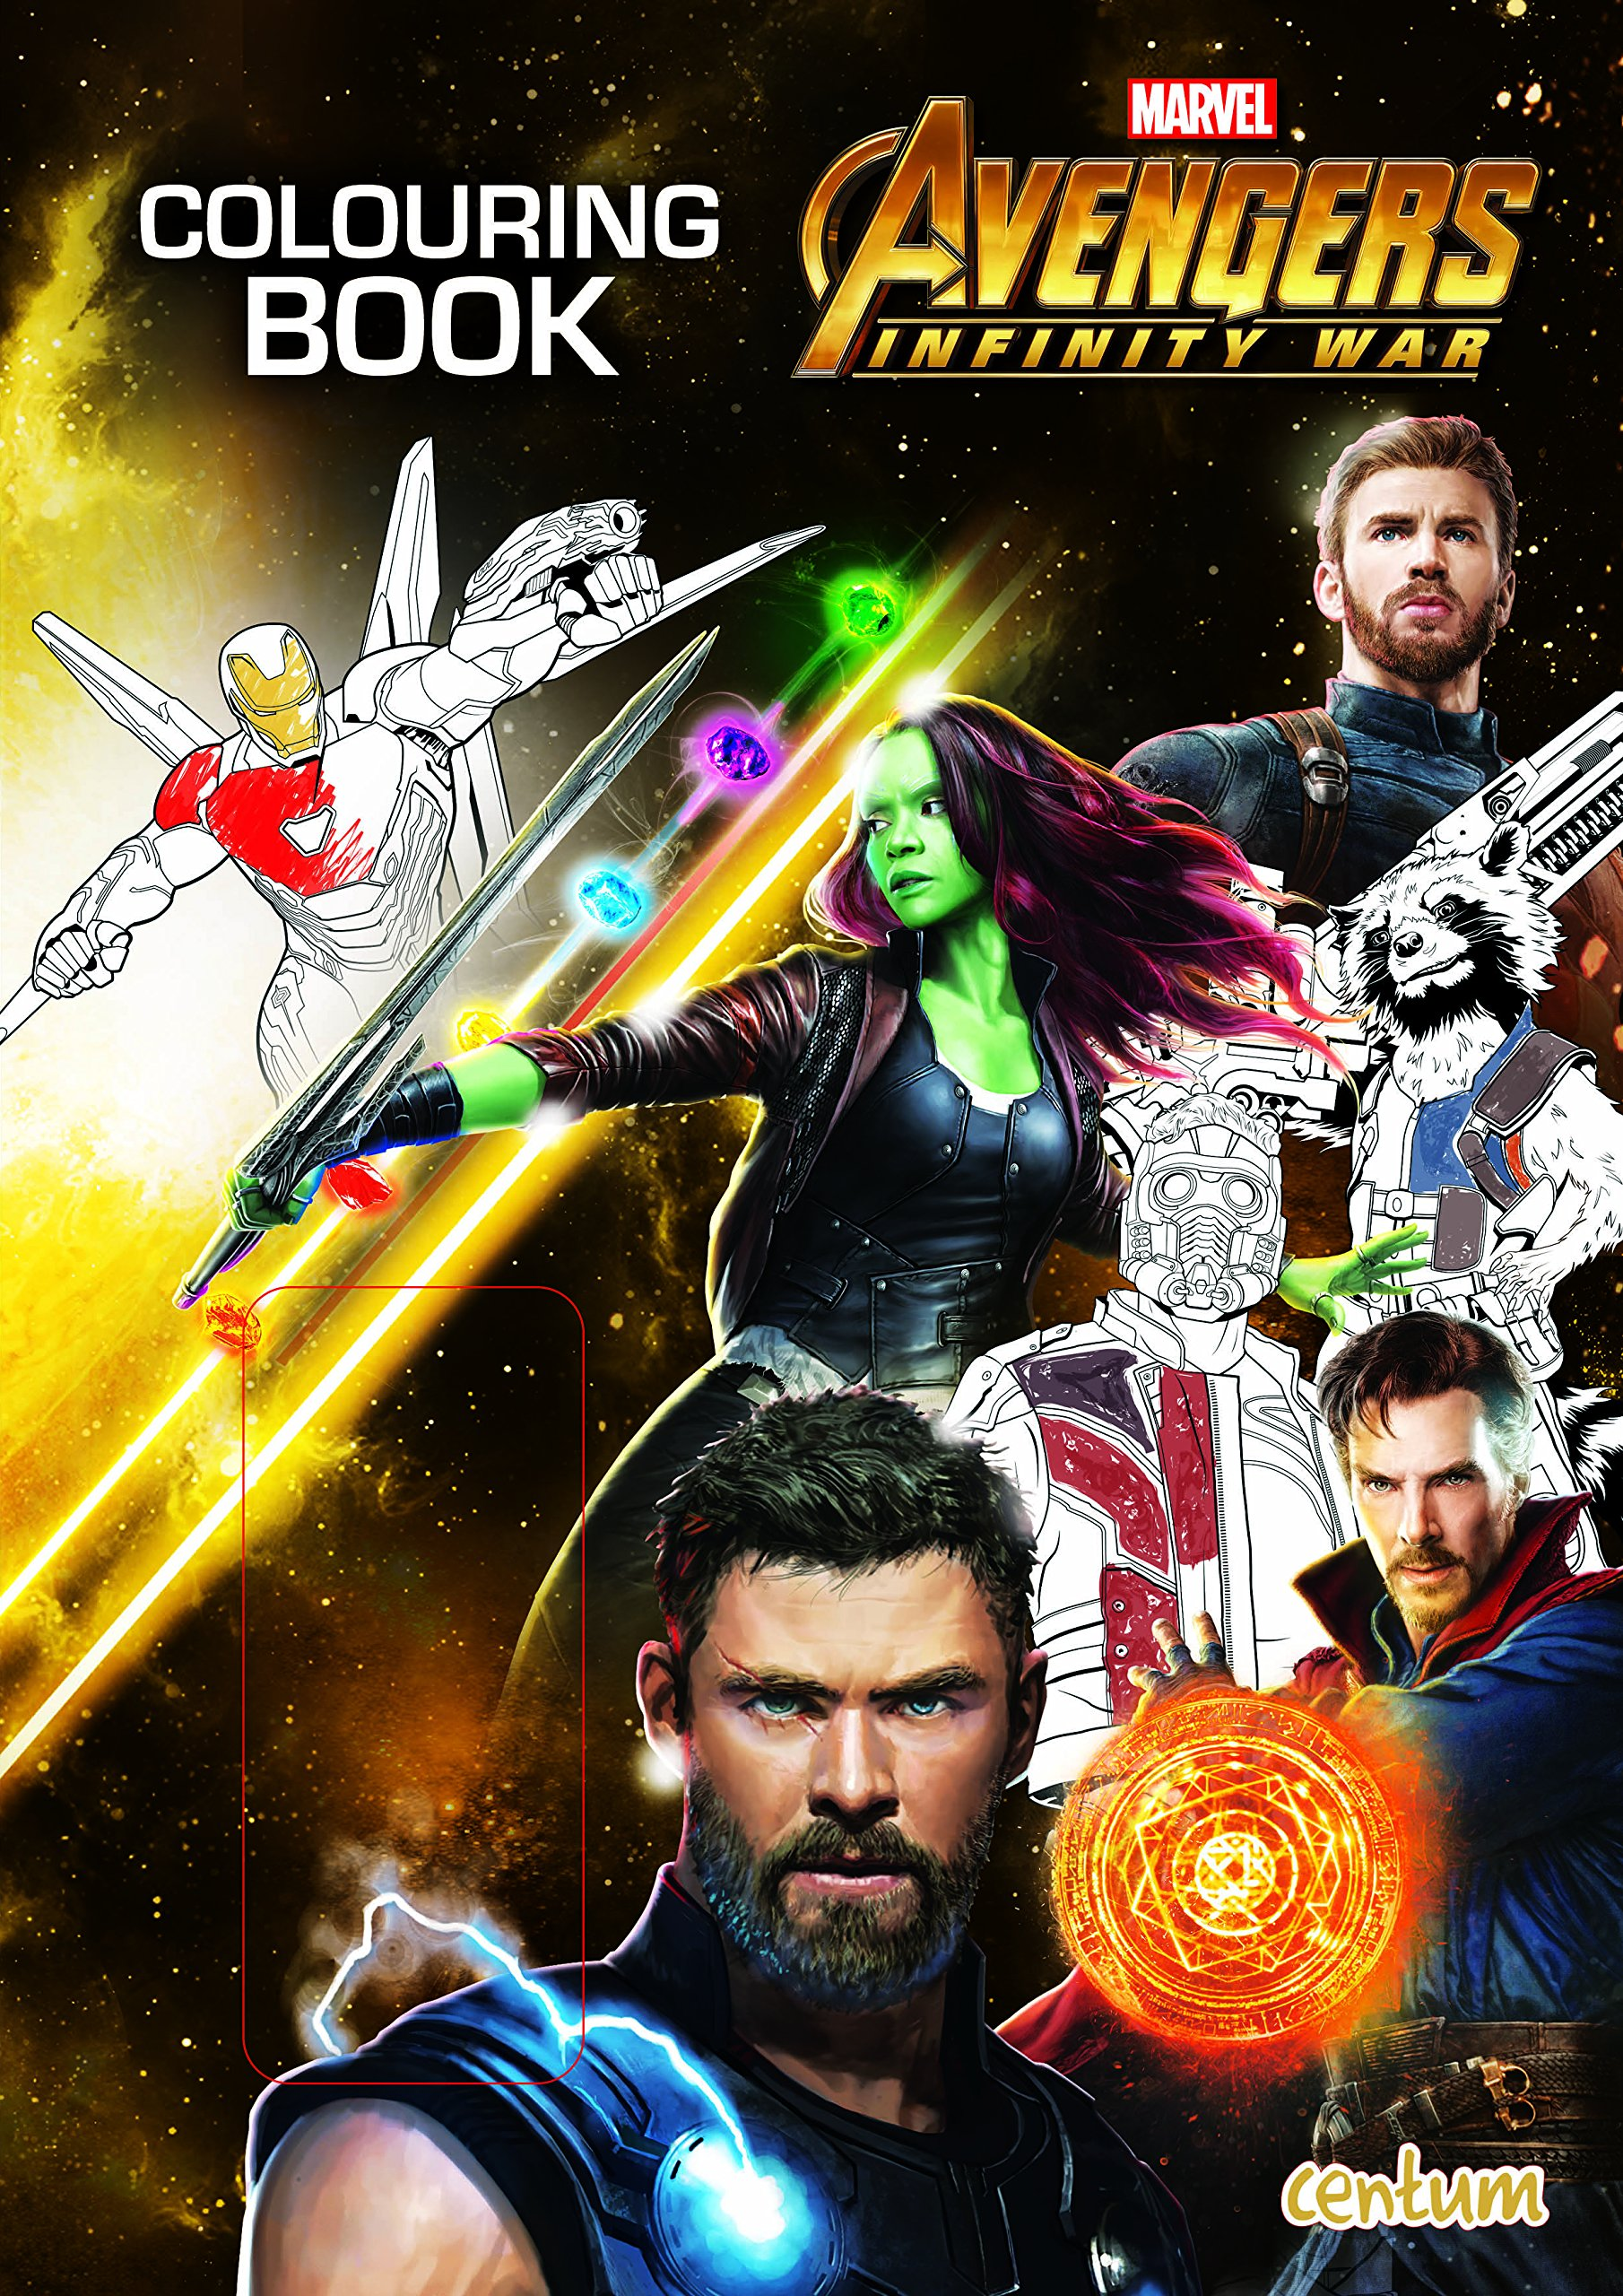 Avengers infinity war colouring book paperback april 1 2018